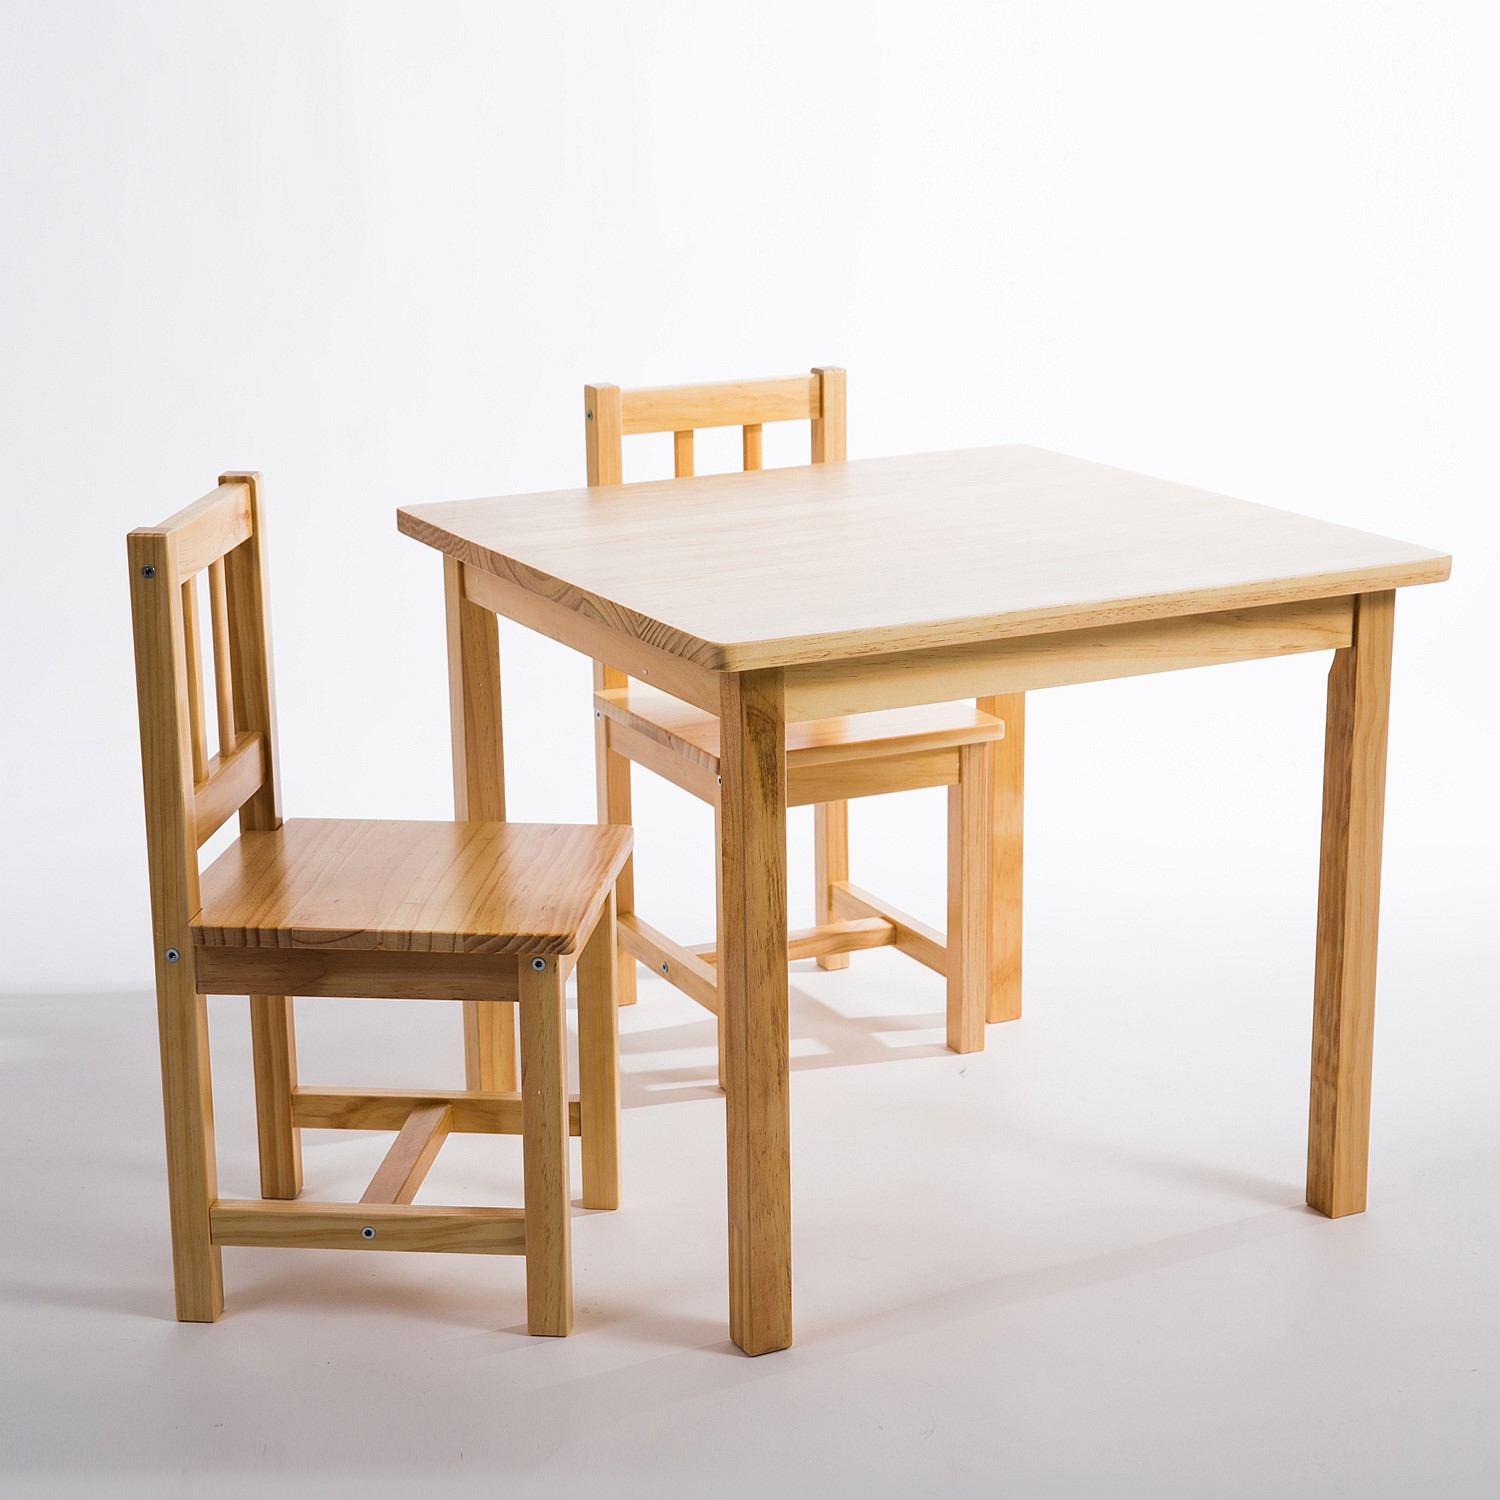 Infant Table And Chairs Design Republique Kids Table Chairs Set